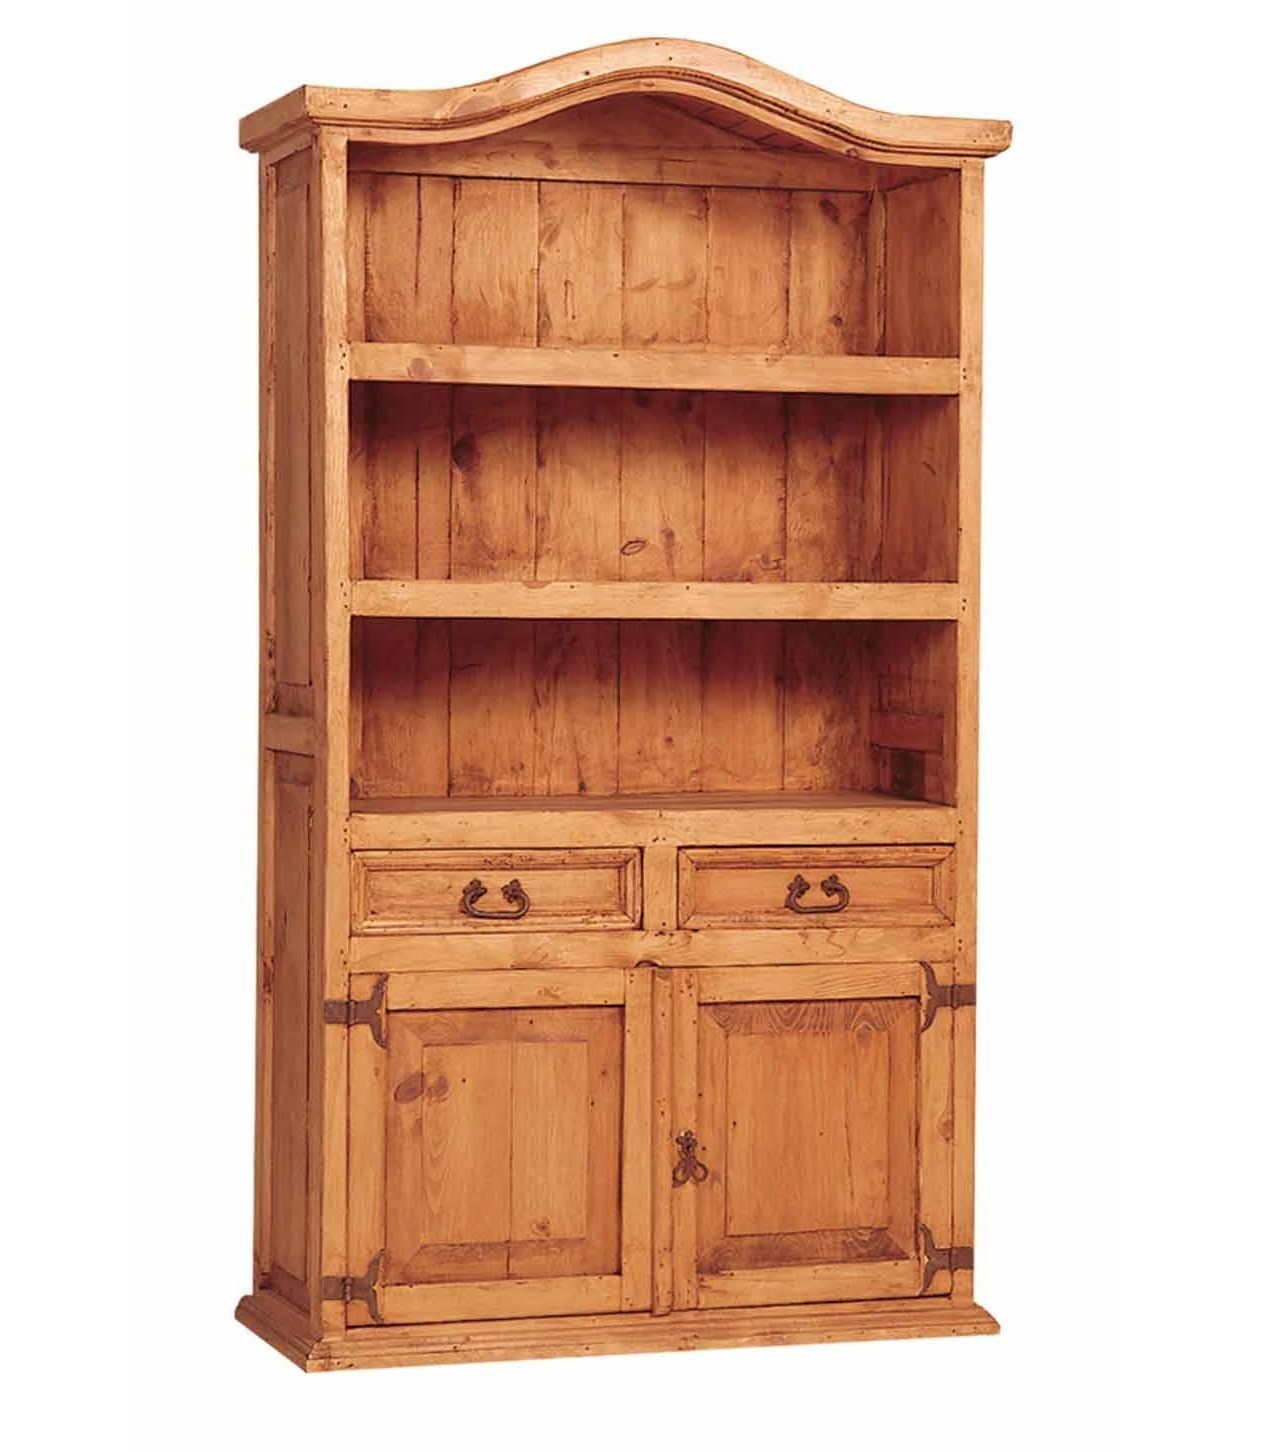 Pine Country Bookcase  Mexican Rustic Furniture And Home